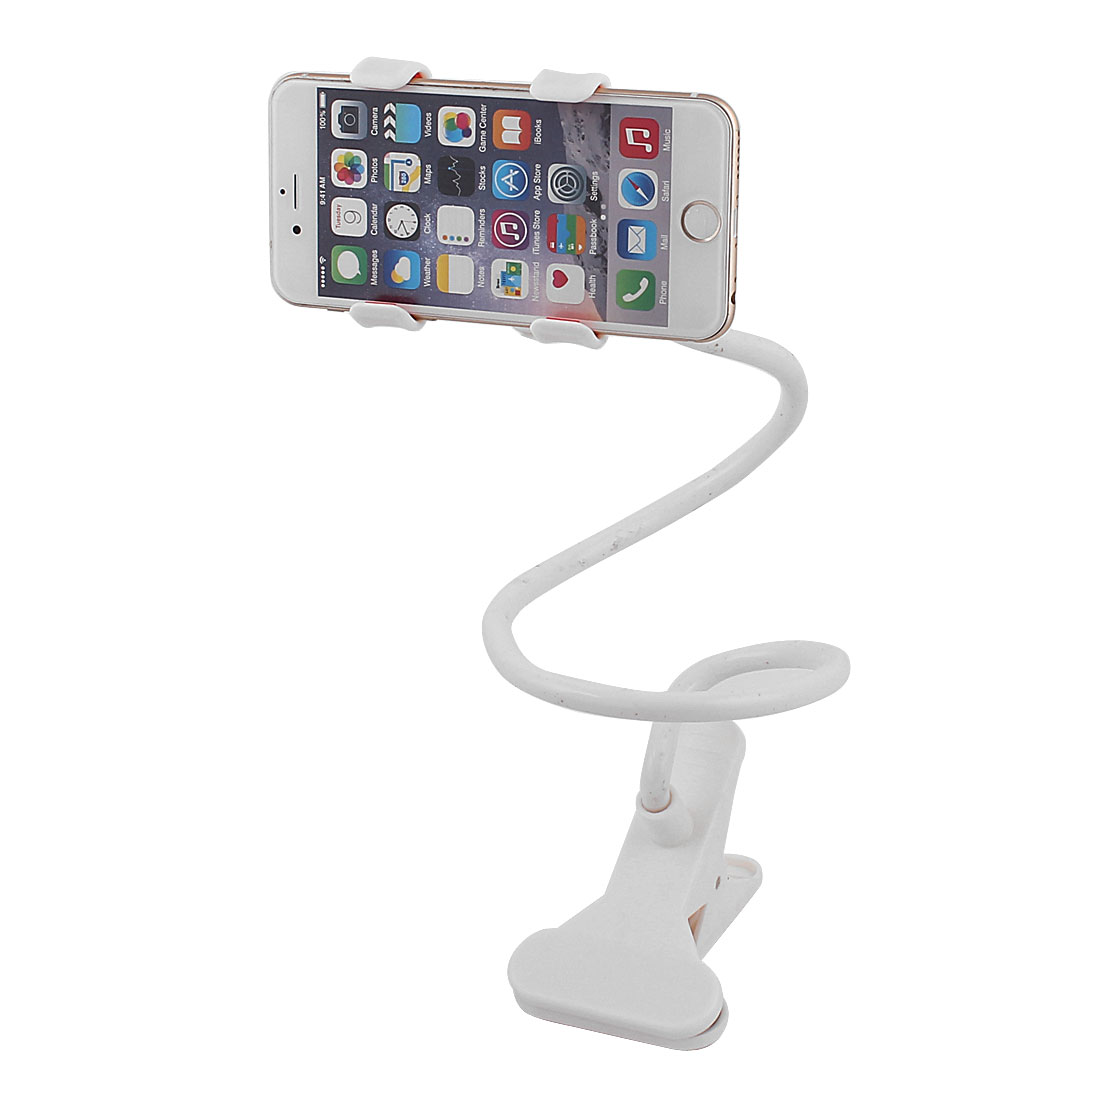 White Flexible 360 Degree Rotatable Dual Clip Mobile Phone Mount Cradle Holder for Auto Car